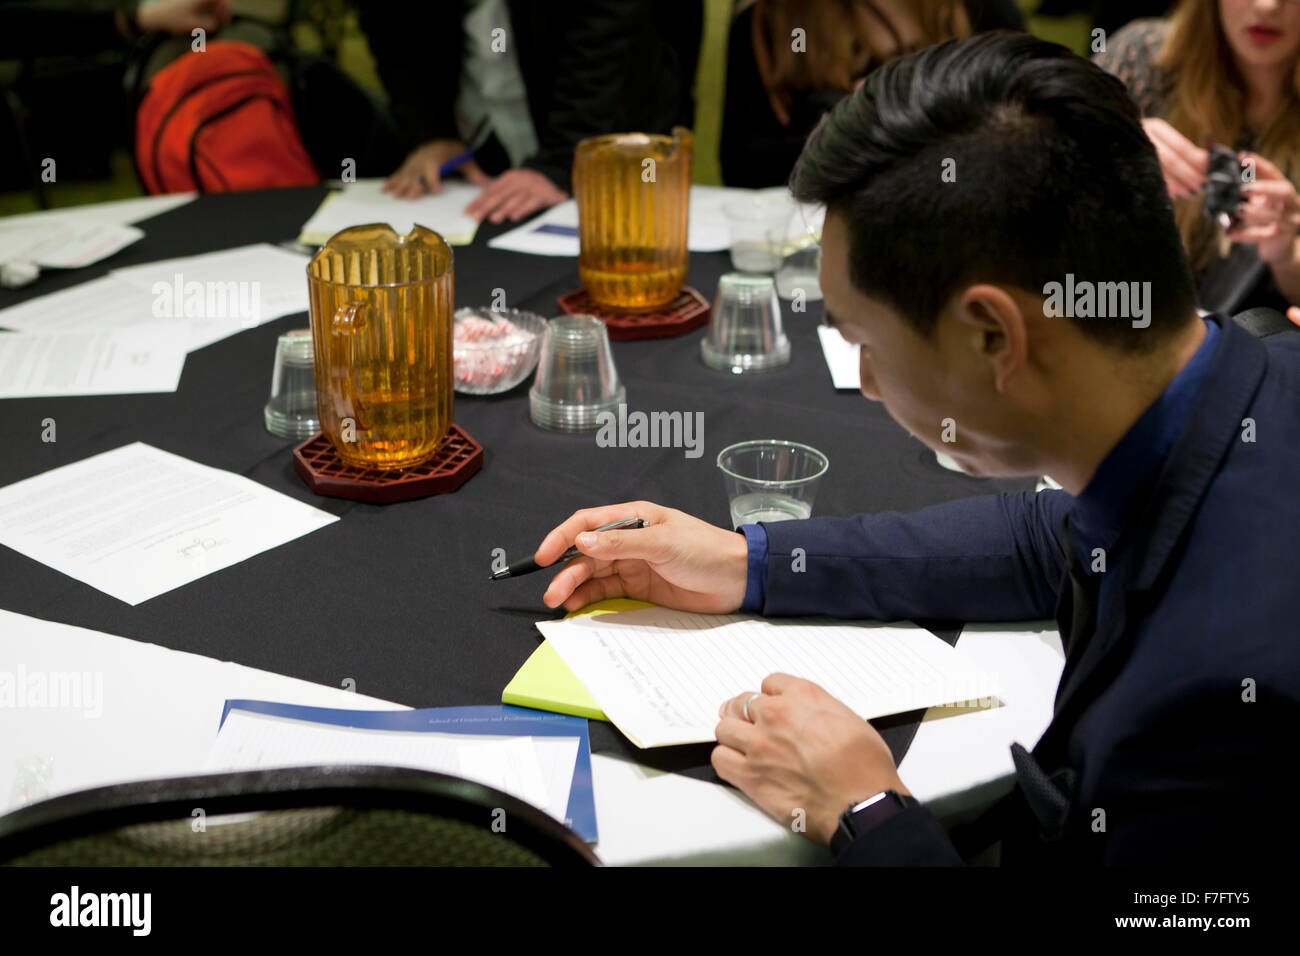 Young Asian man filling out an application at job recruiting fair - Arlington, Virginia USA - Stock Image